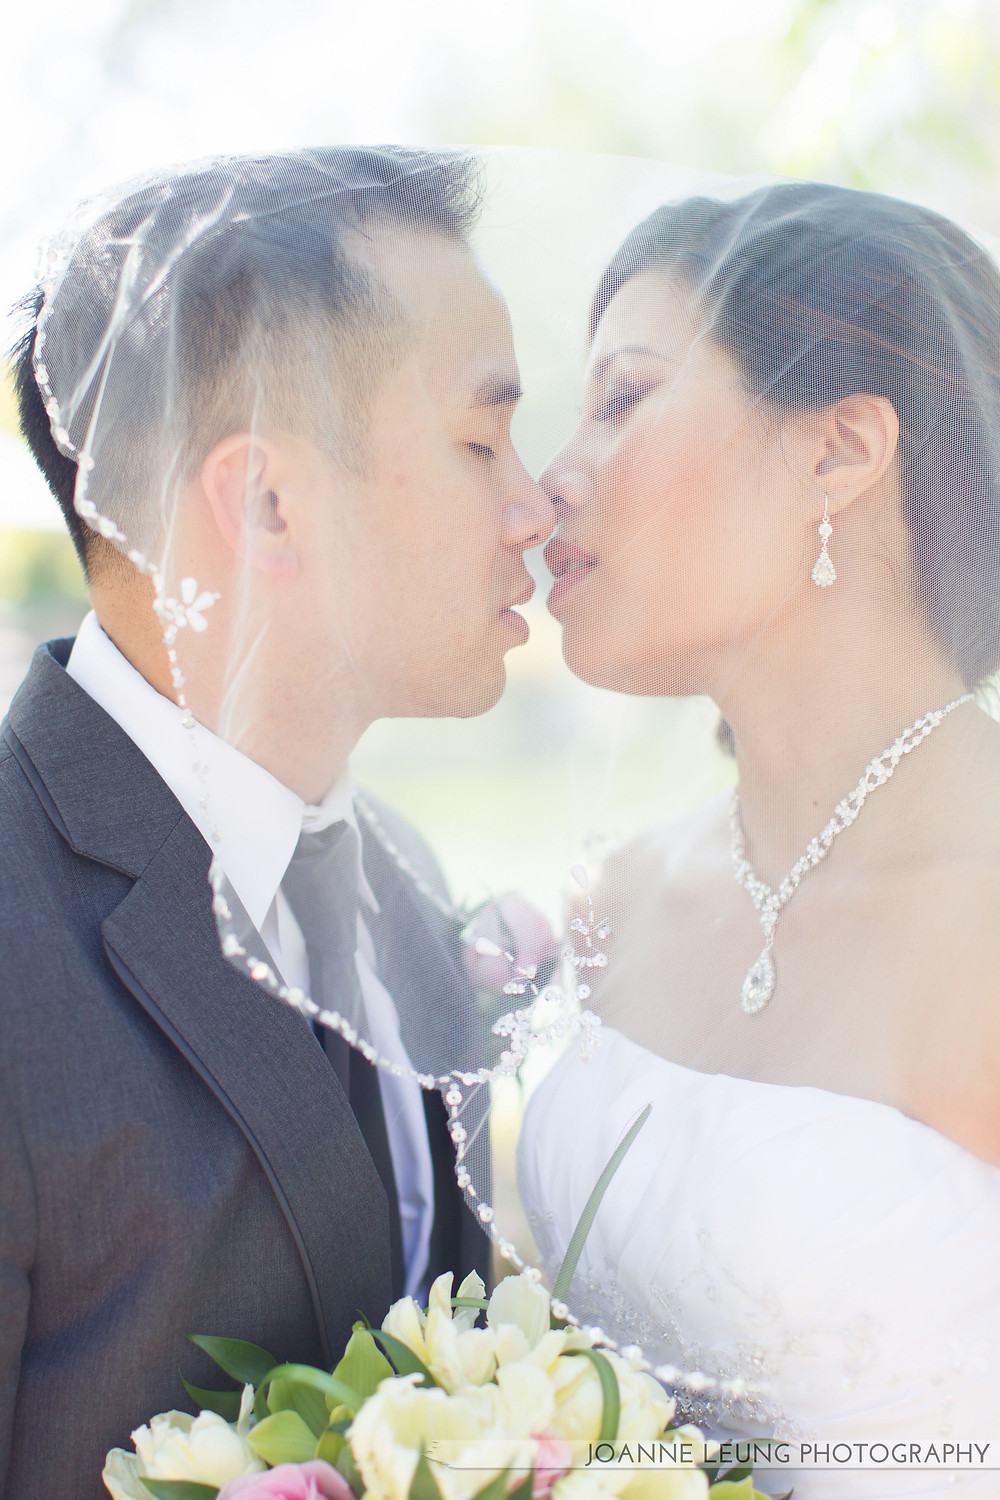 Bride and Groom Kissing Wedding Day